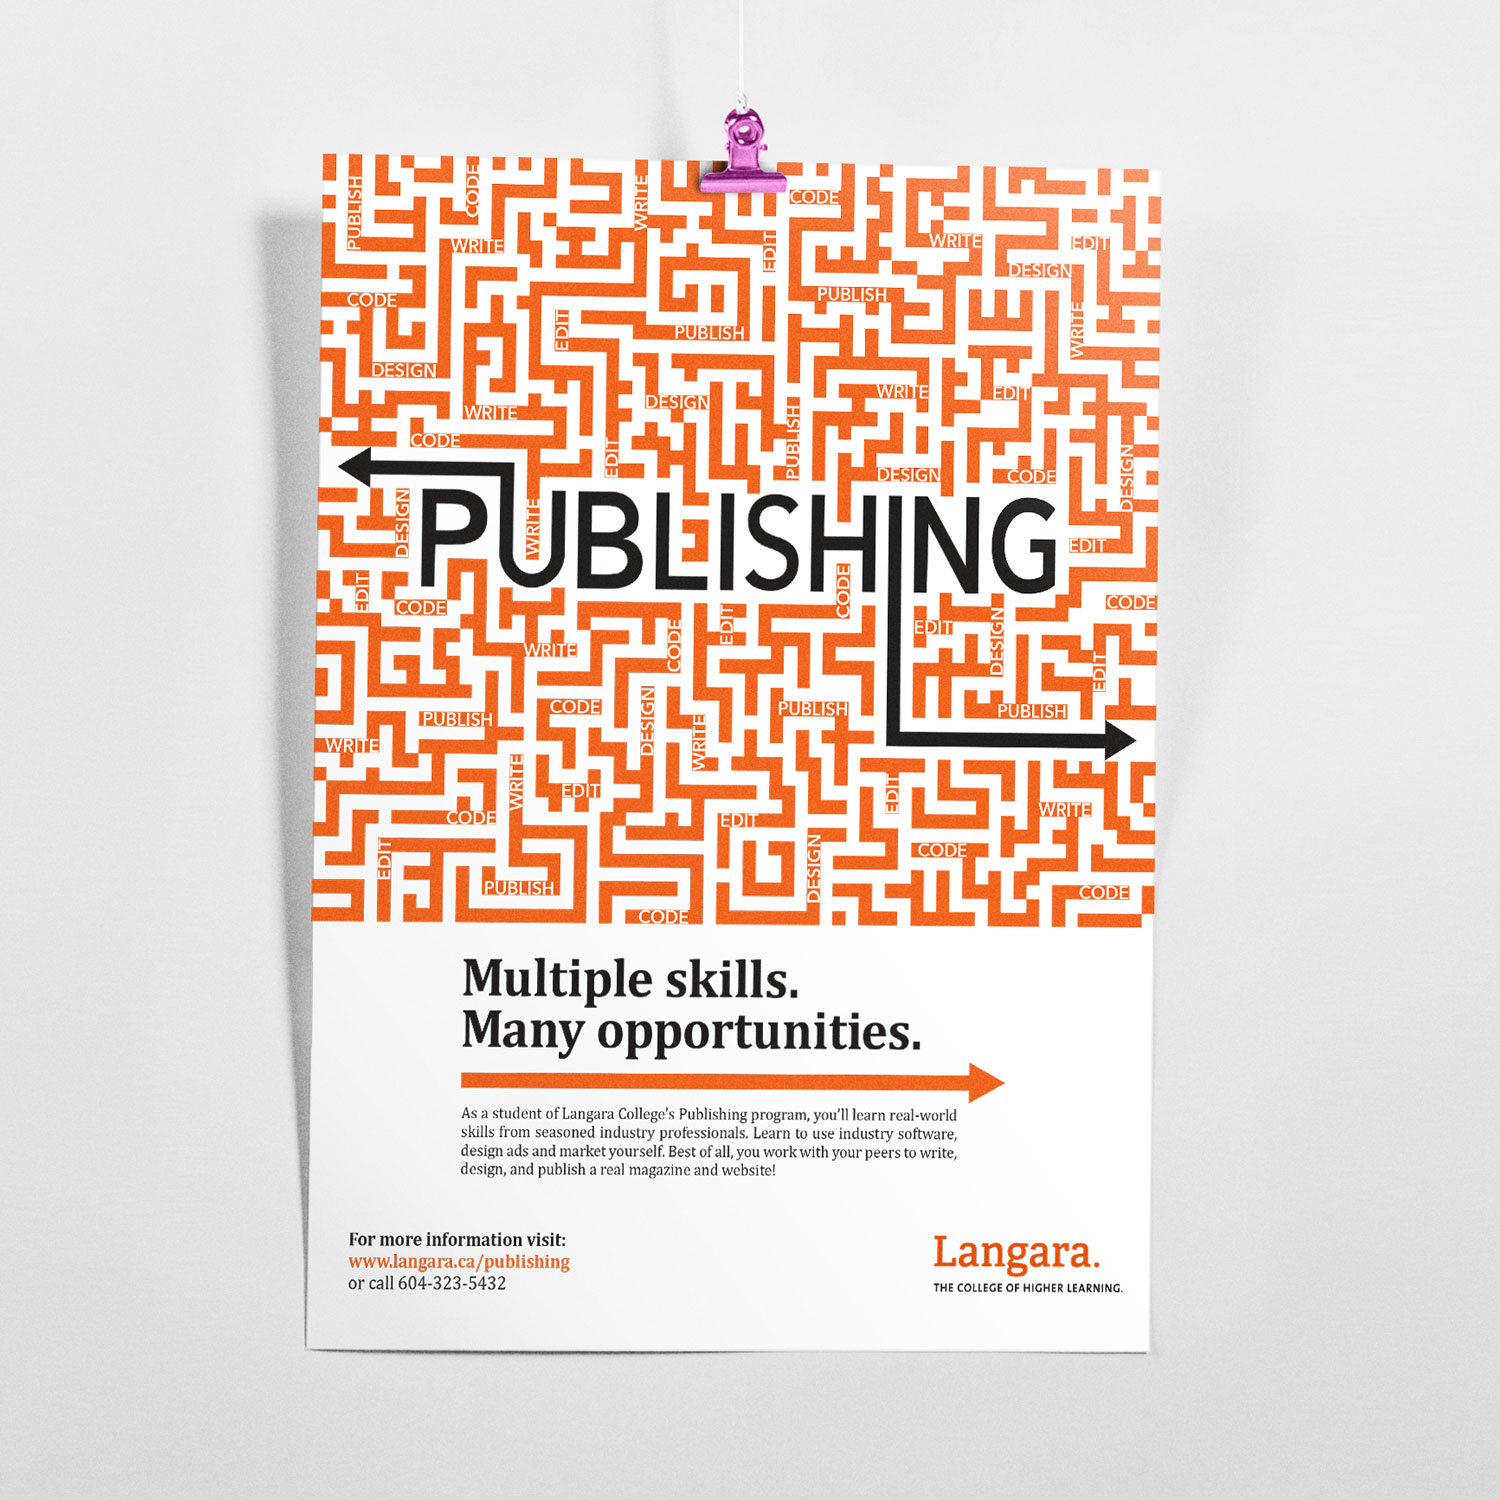 Langara College Publishing Program Poster